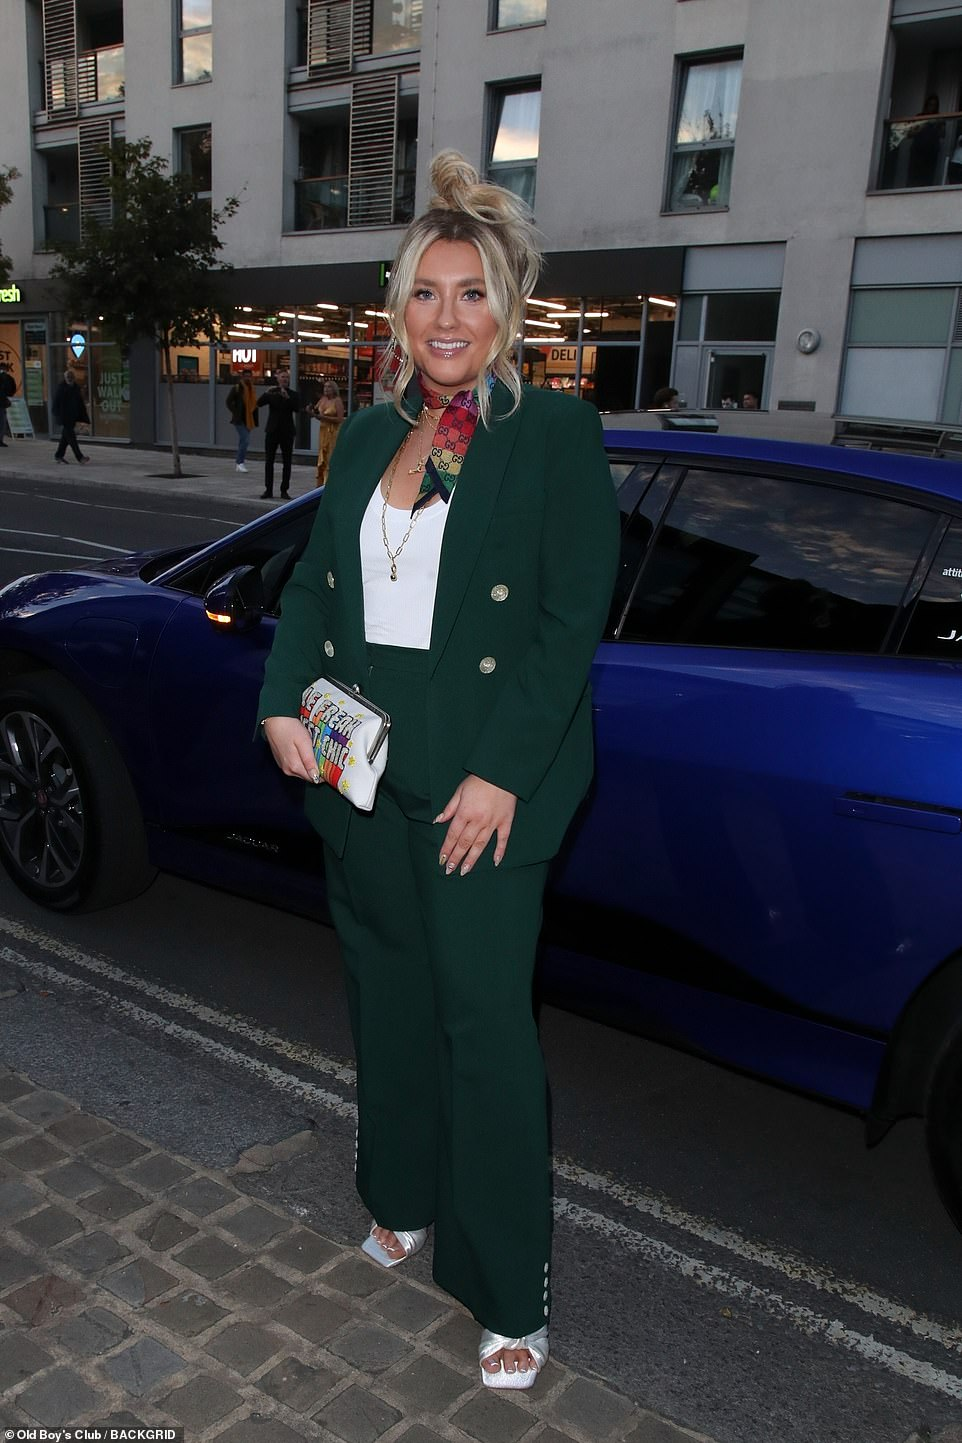 Smart look: X Factor singerElla Henderson wowed in a dark green suit for the event on Wednesday